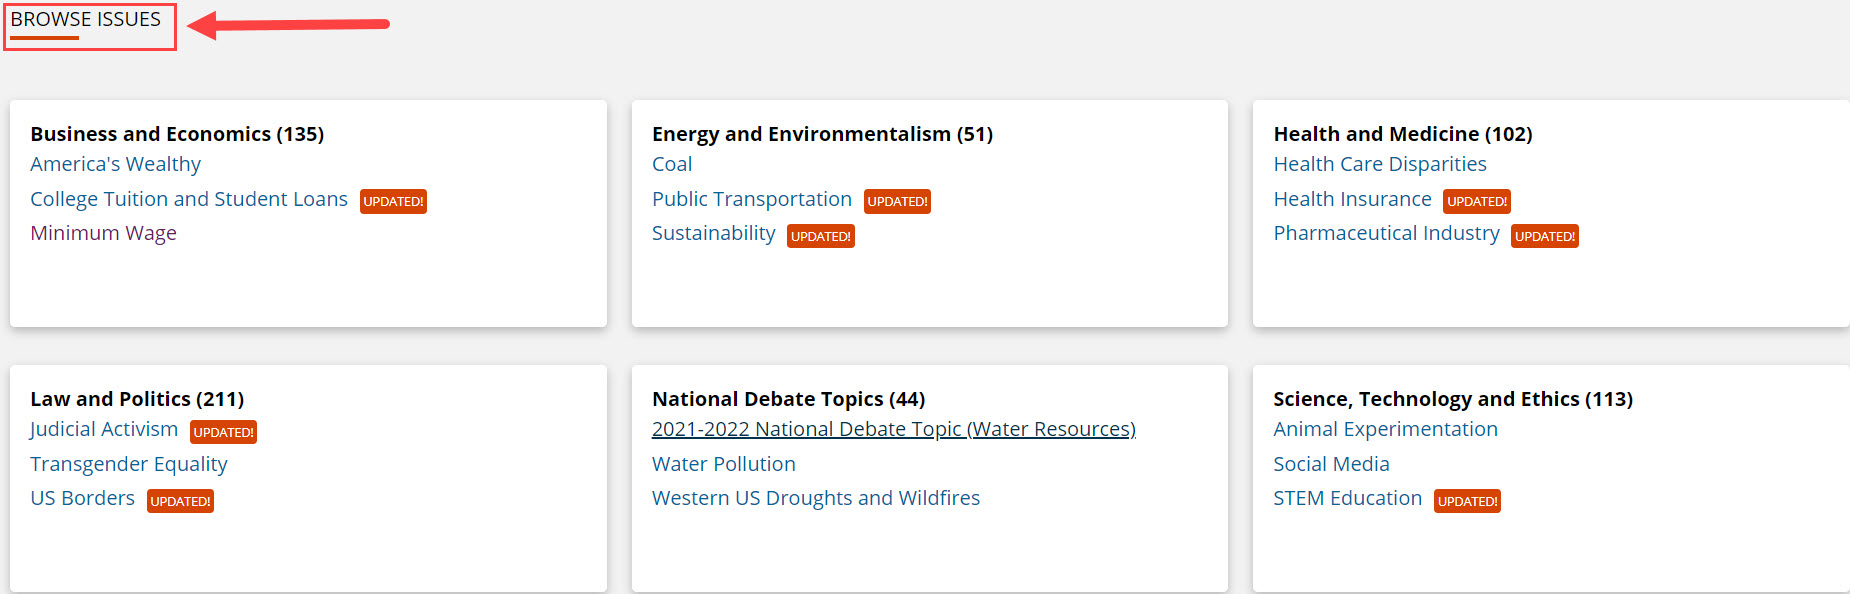 Browse Subjects in Opposing Viewpoints with a red box around it and a red arrow pointing to it.